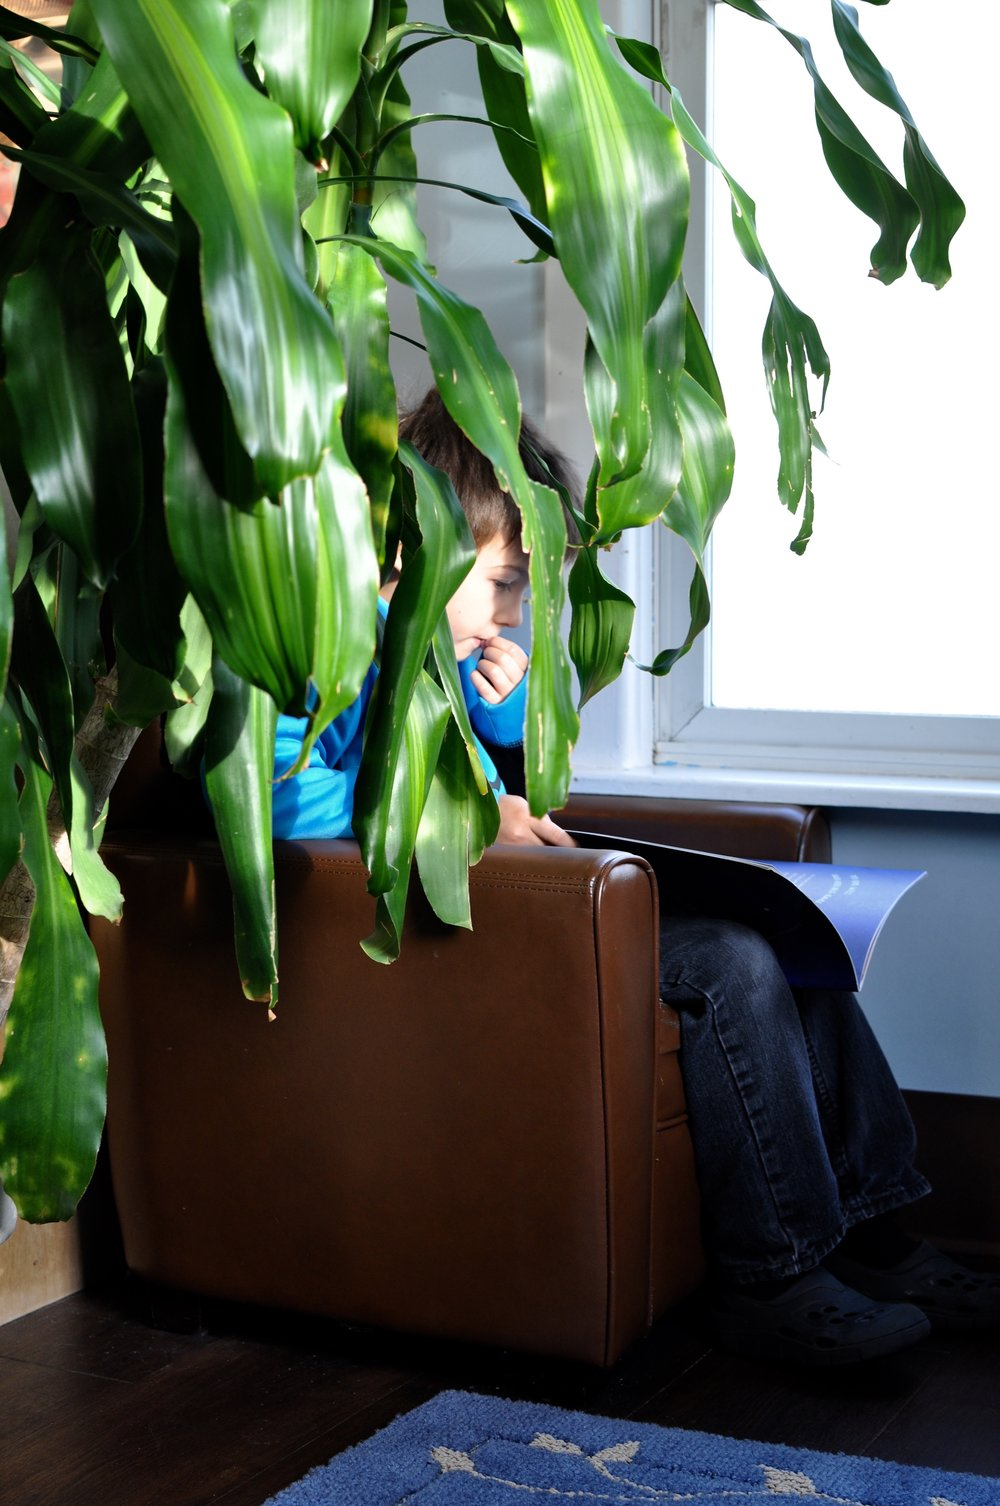 They also provide a little privacy! Here, a child reads to himself within the comfy shelter of some big green leaves.